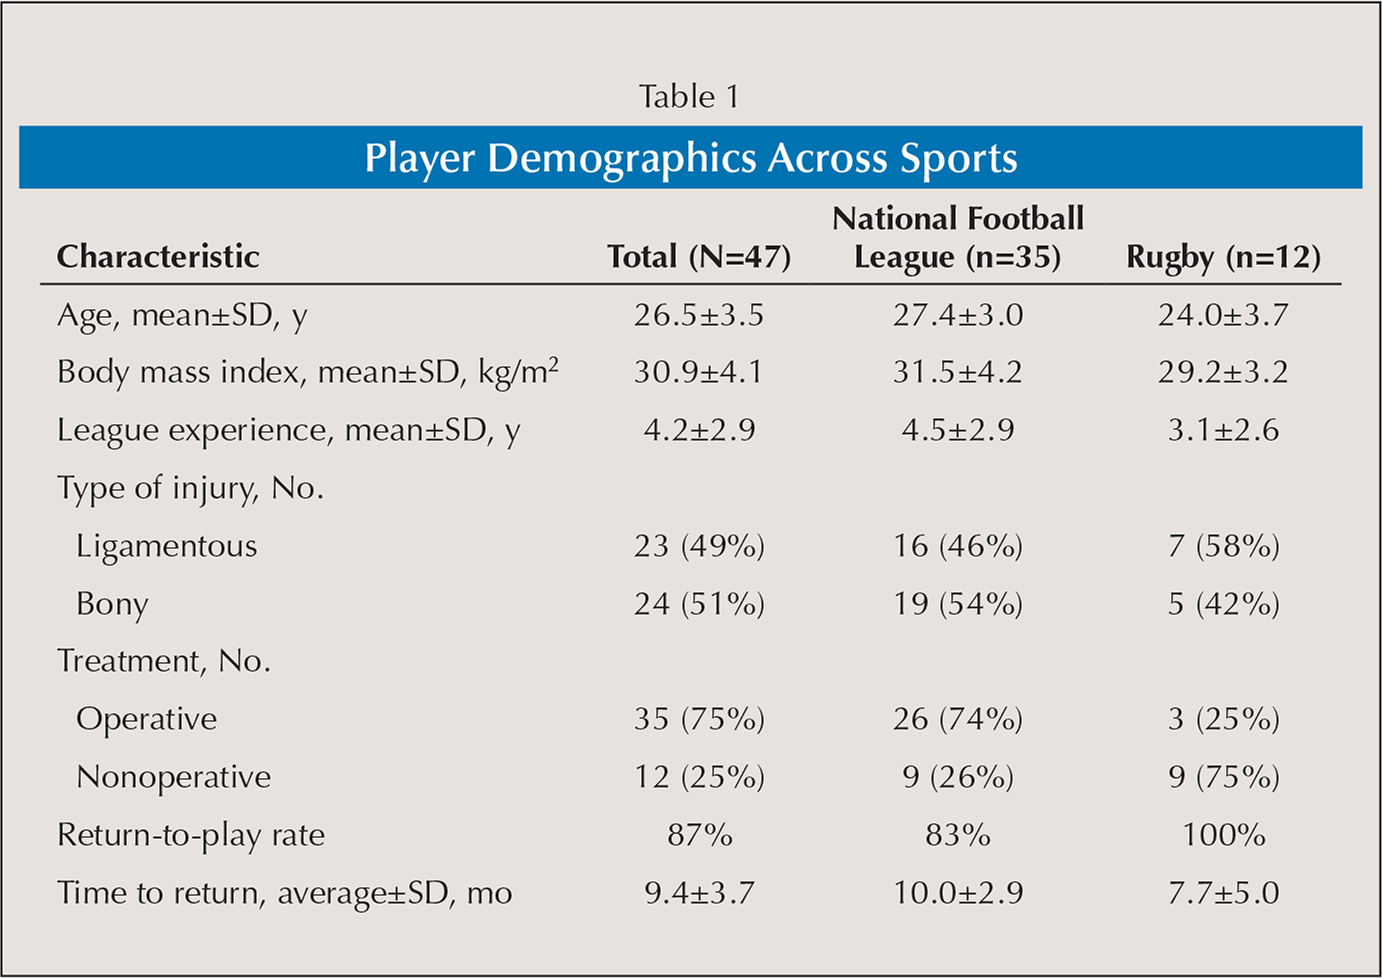 Player Demographics Across Sports